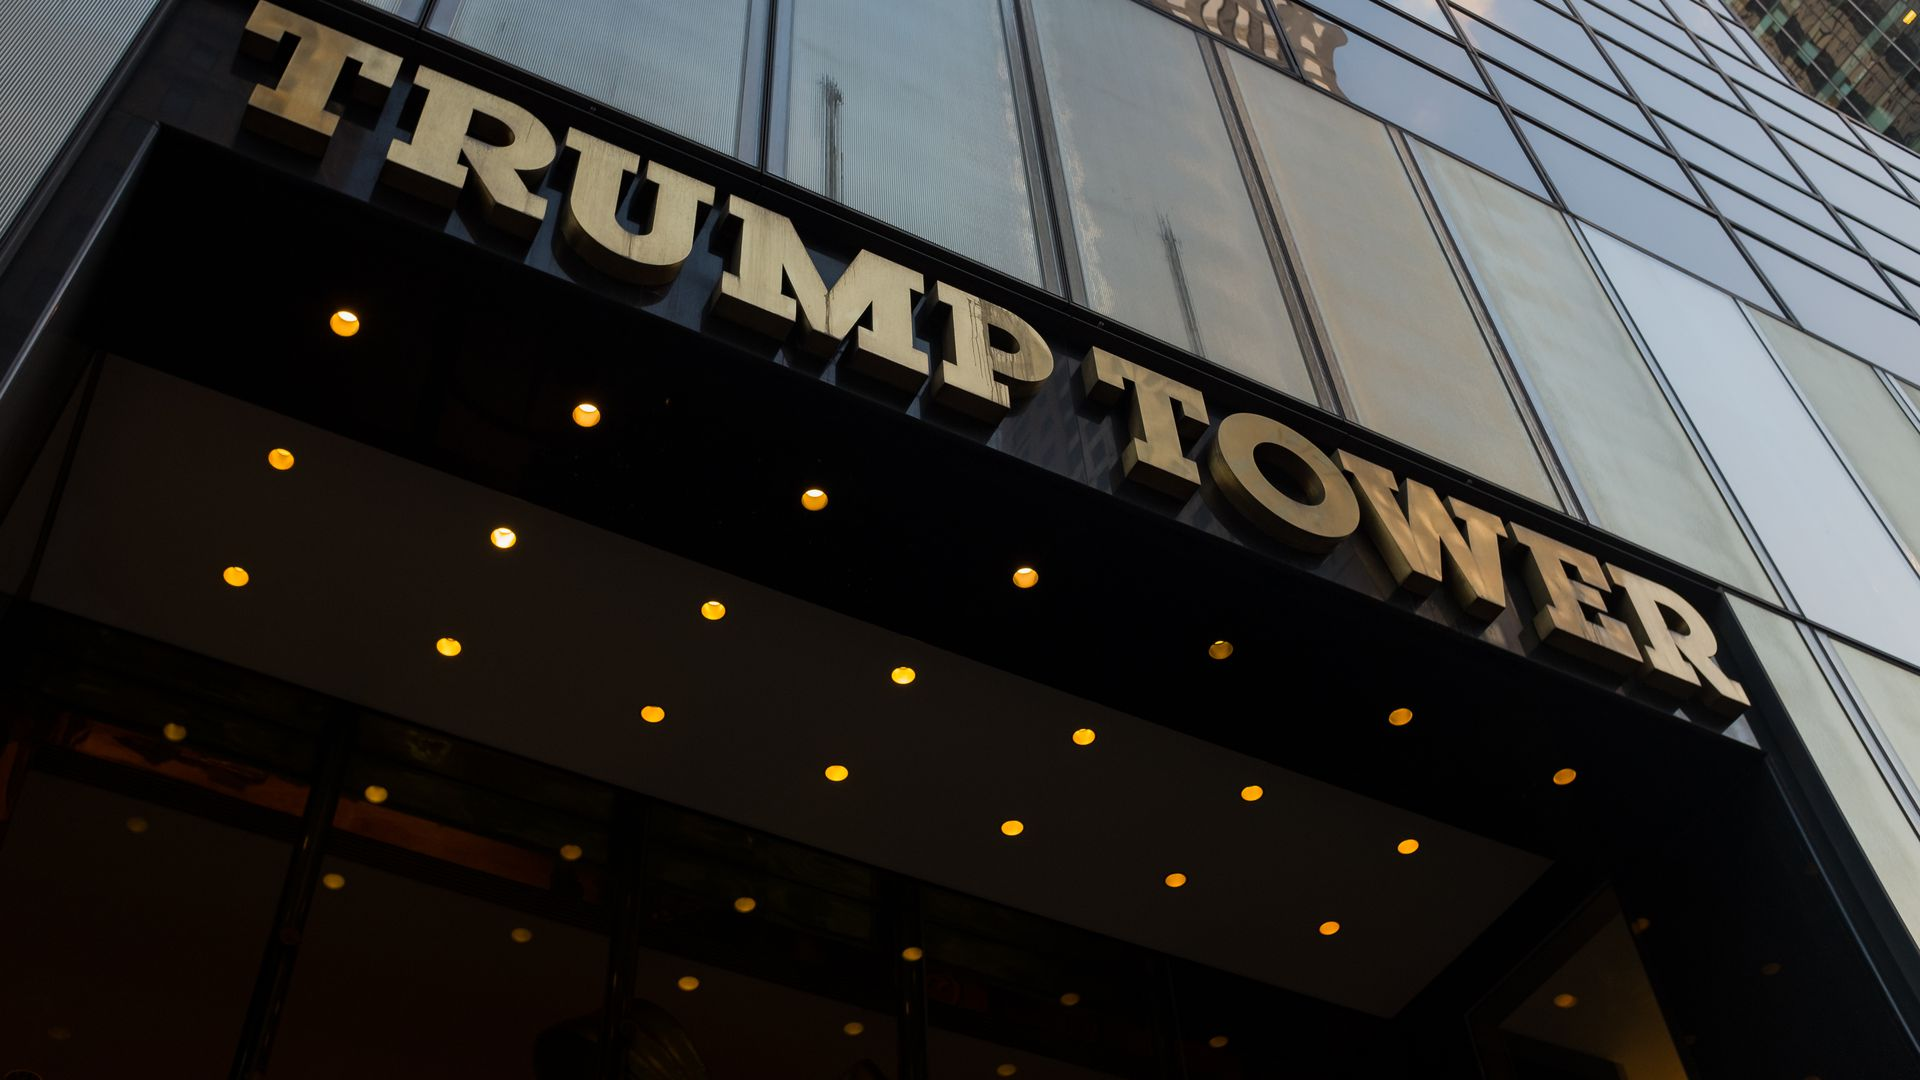 A general view of the sign and exterior of Trump Tower entrance.